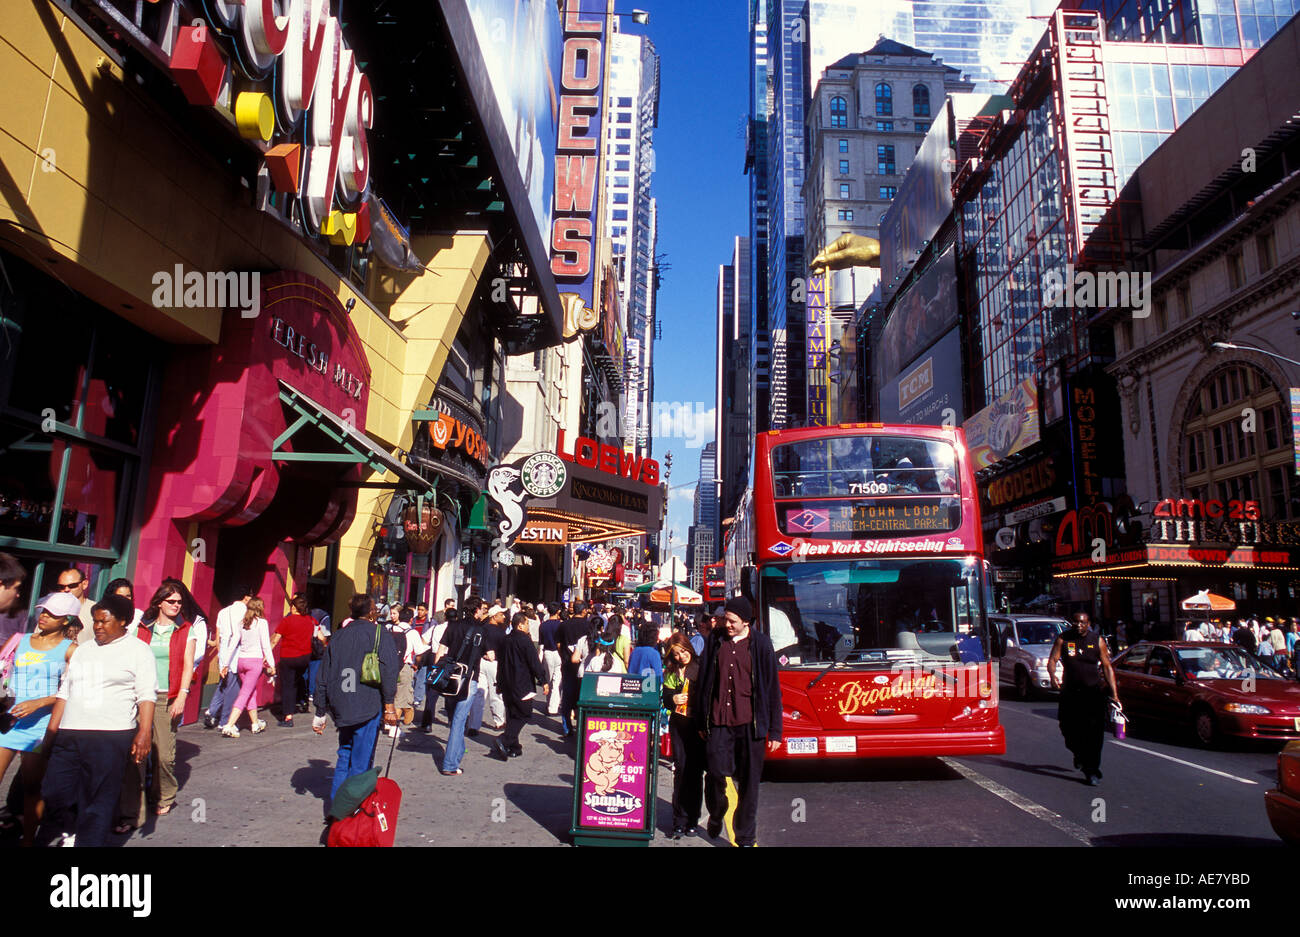 42nd St and 8th Avenue Times Square NY USA - Stock Image